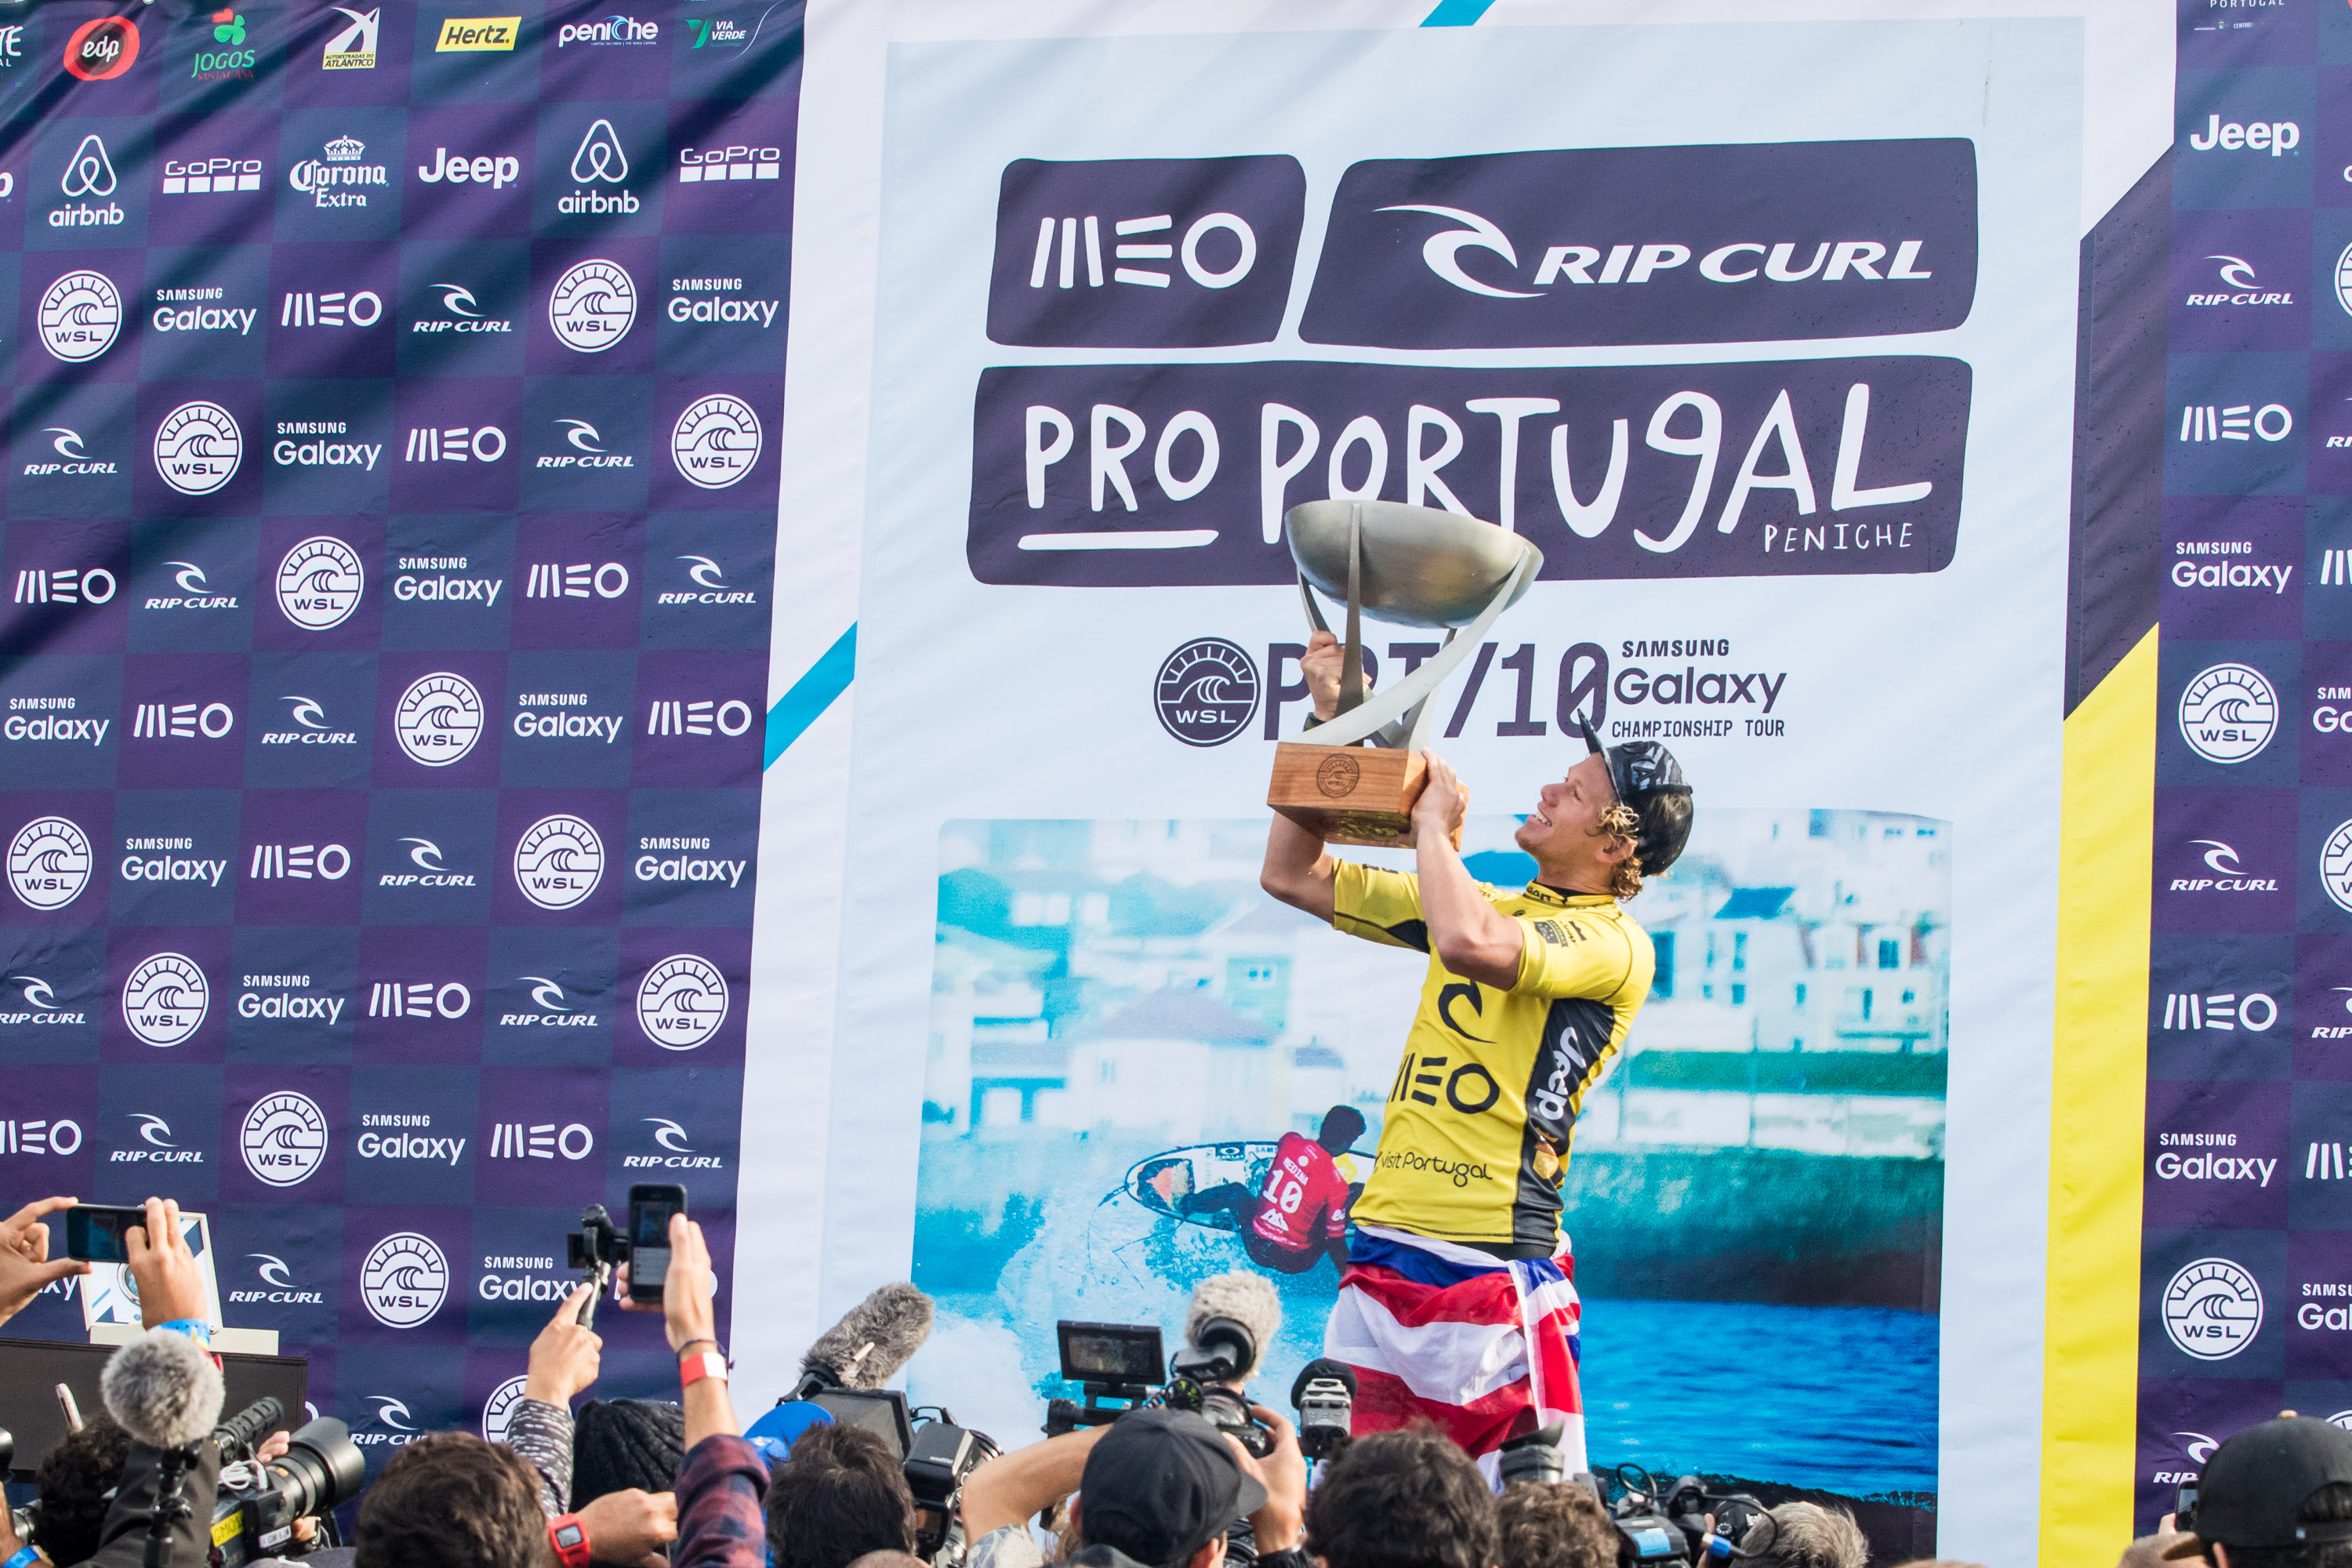 Finals Day John John Florence wins his first world title!